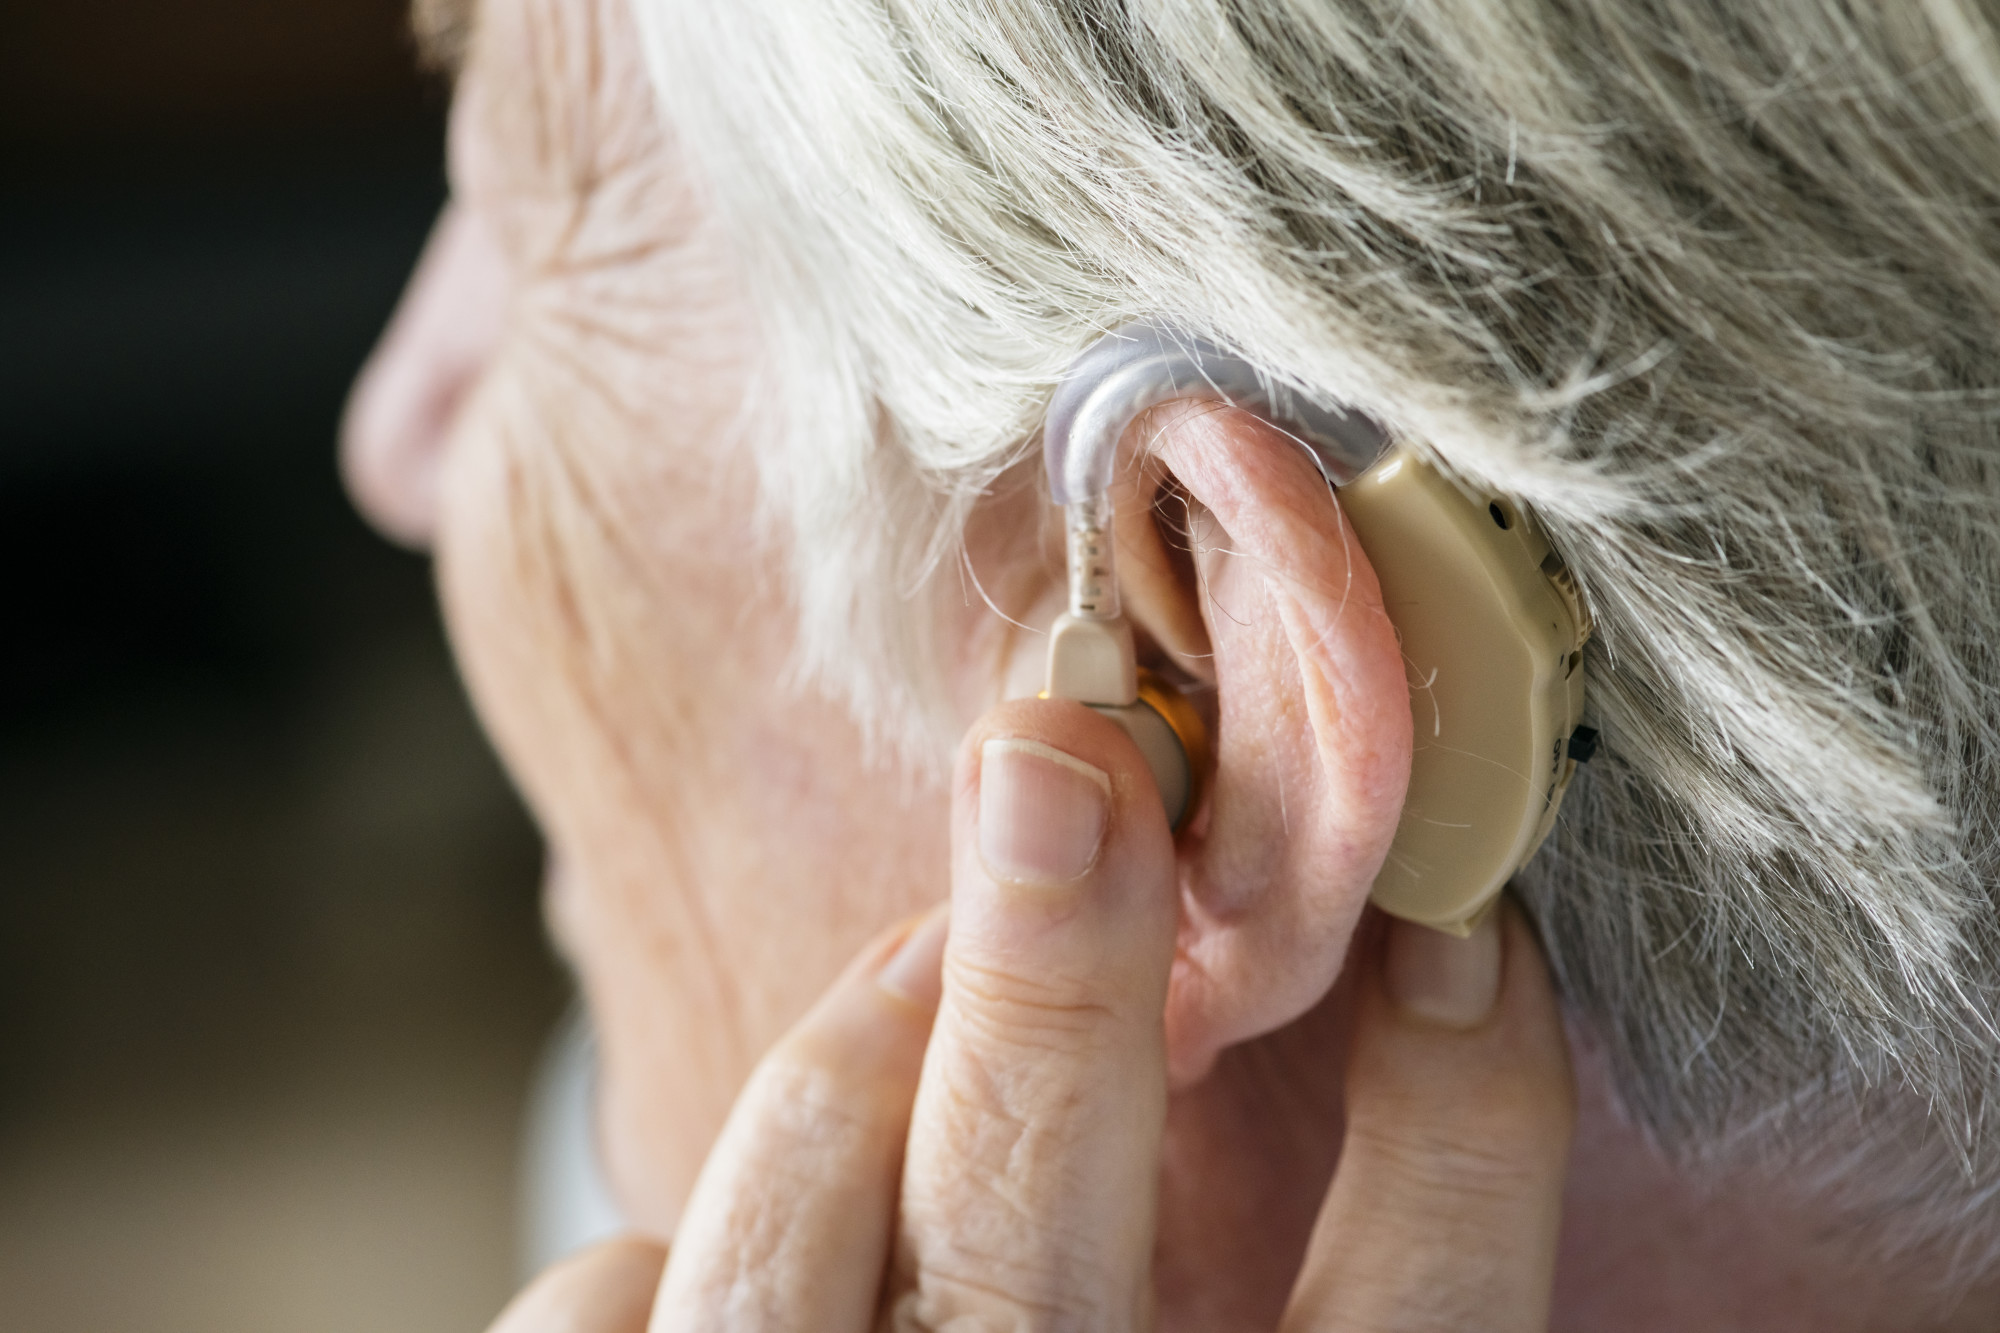 conditions that cause hearing loss